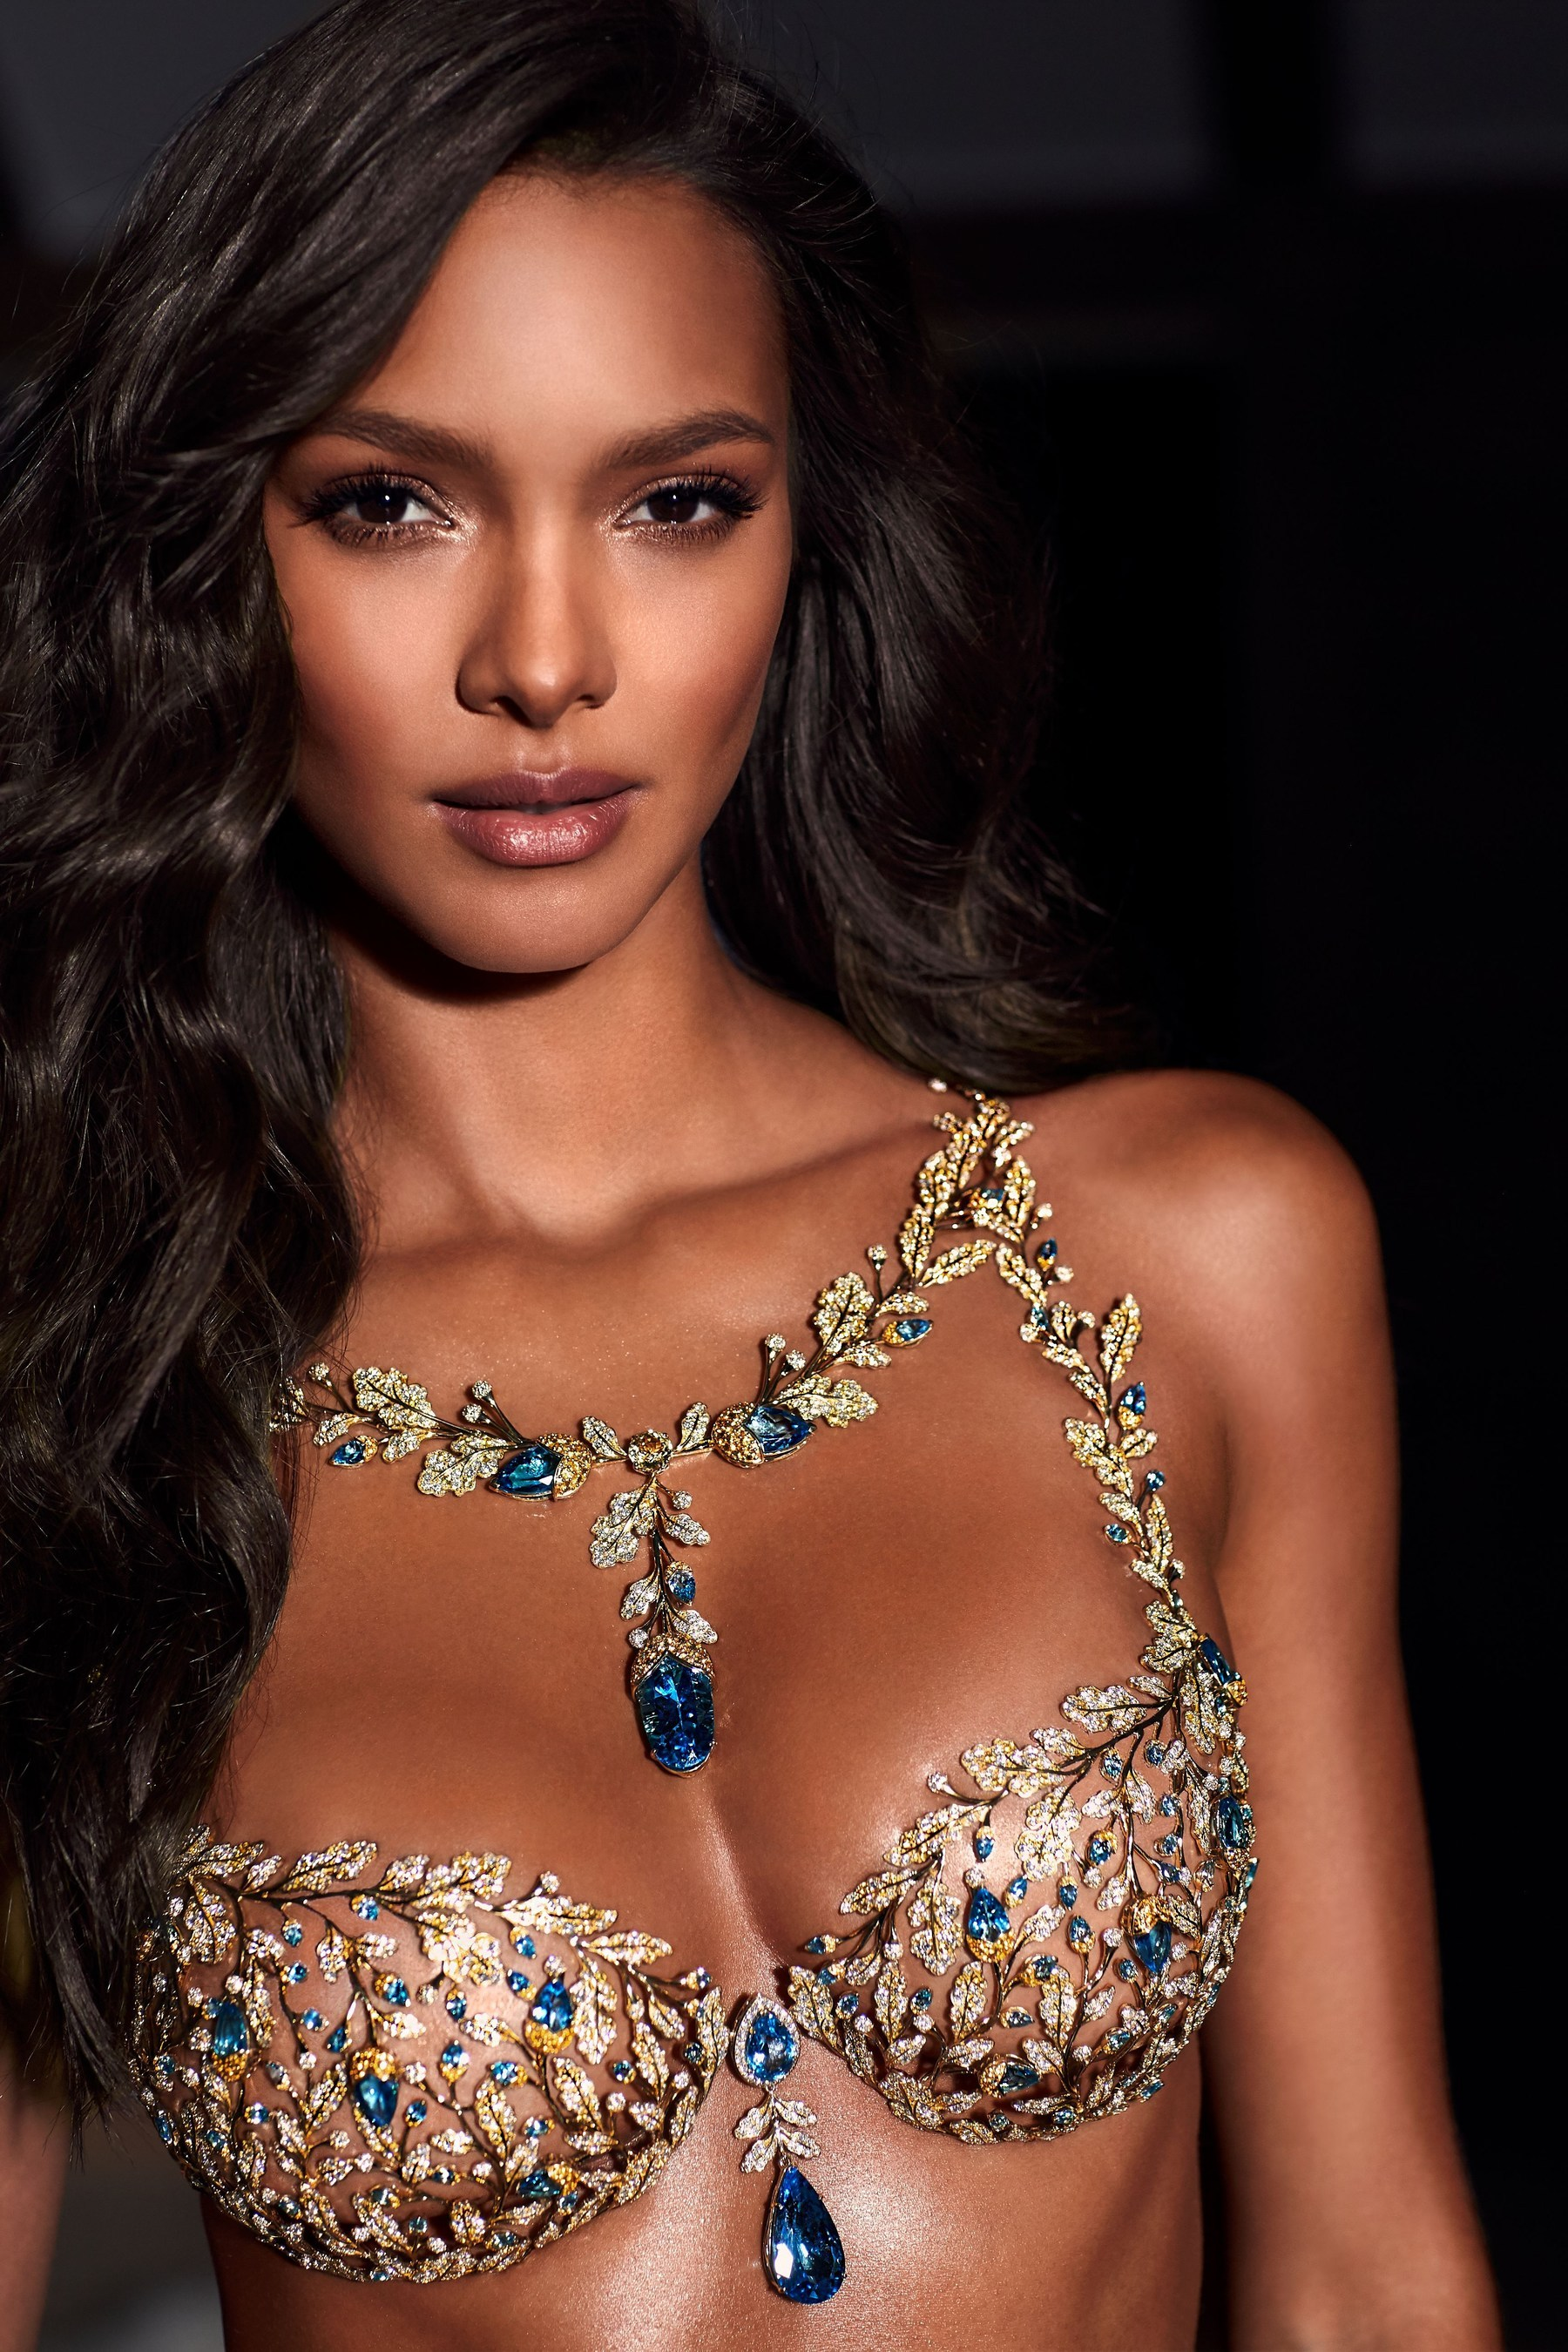 victoria's secret diamond bra